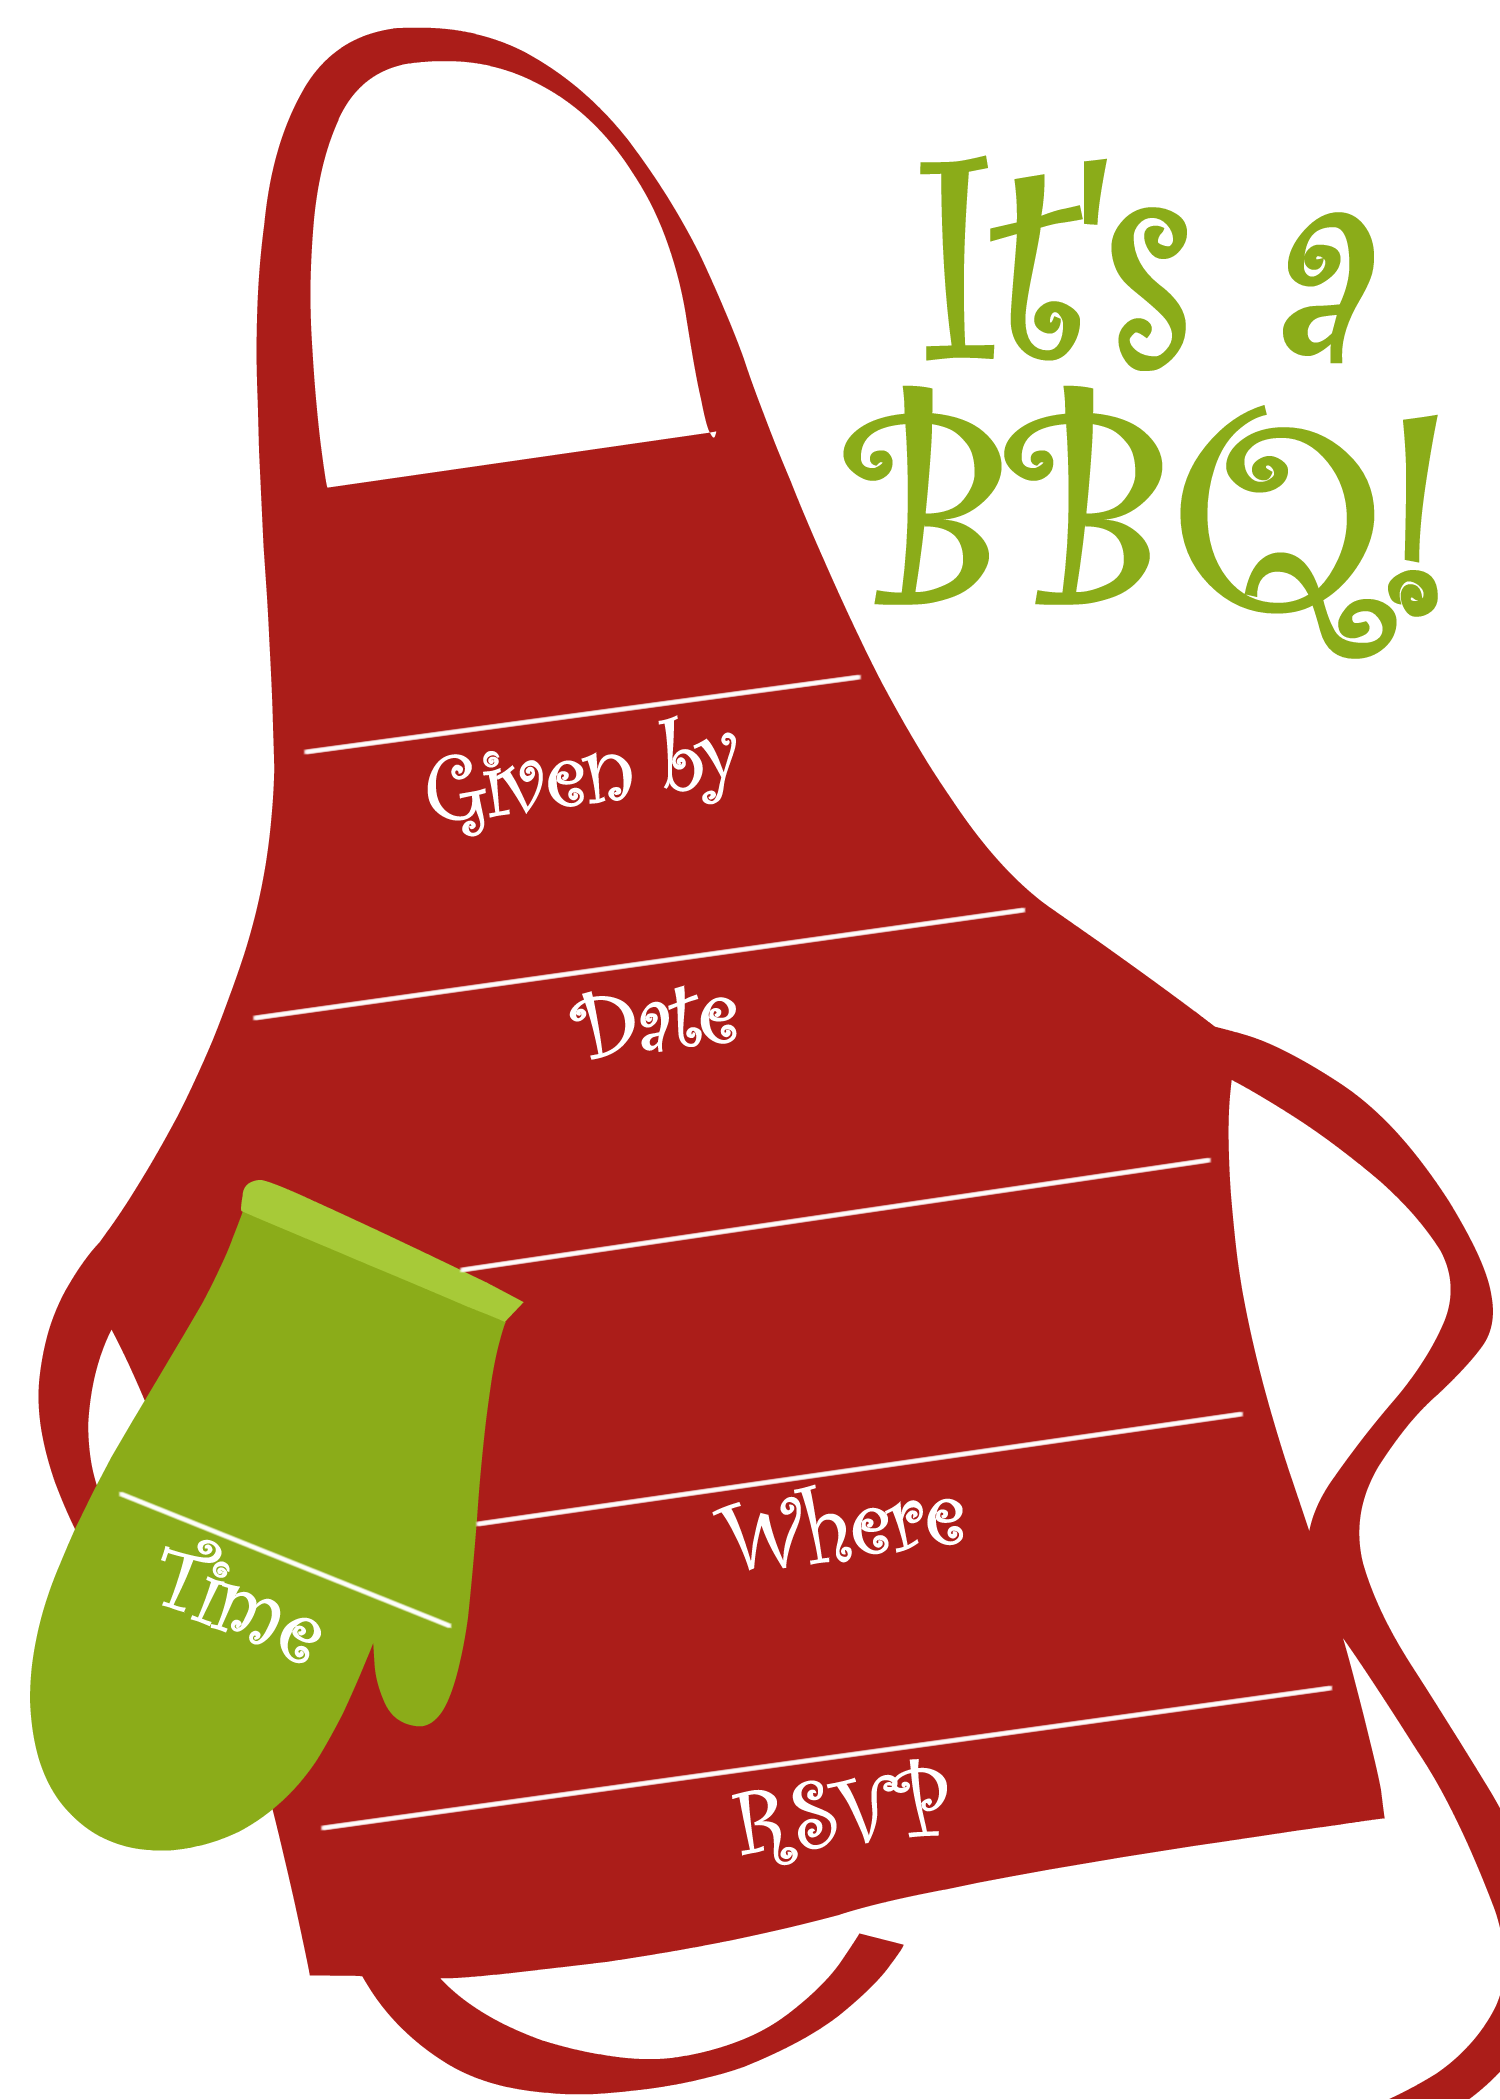 free bbq party invitations templates bbq party. Black Bedroom Furniture Sets. Home Design Ideas